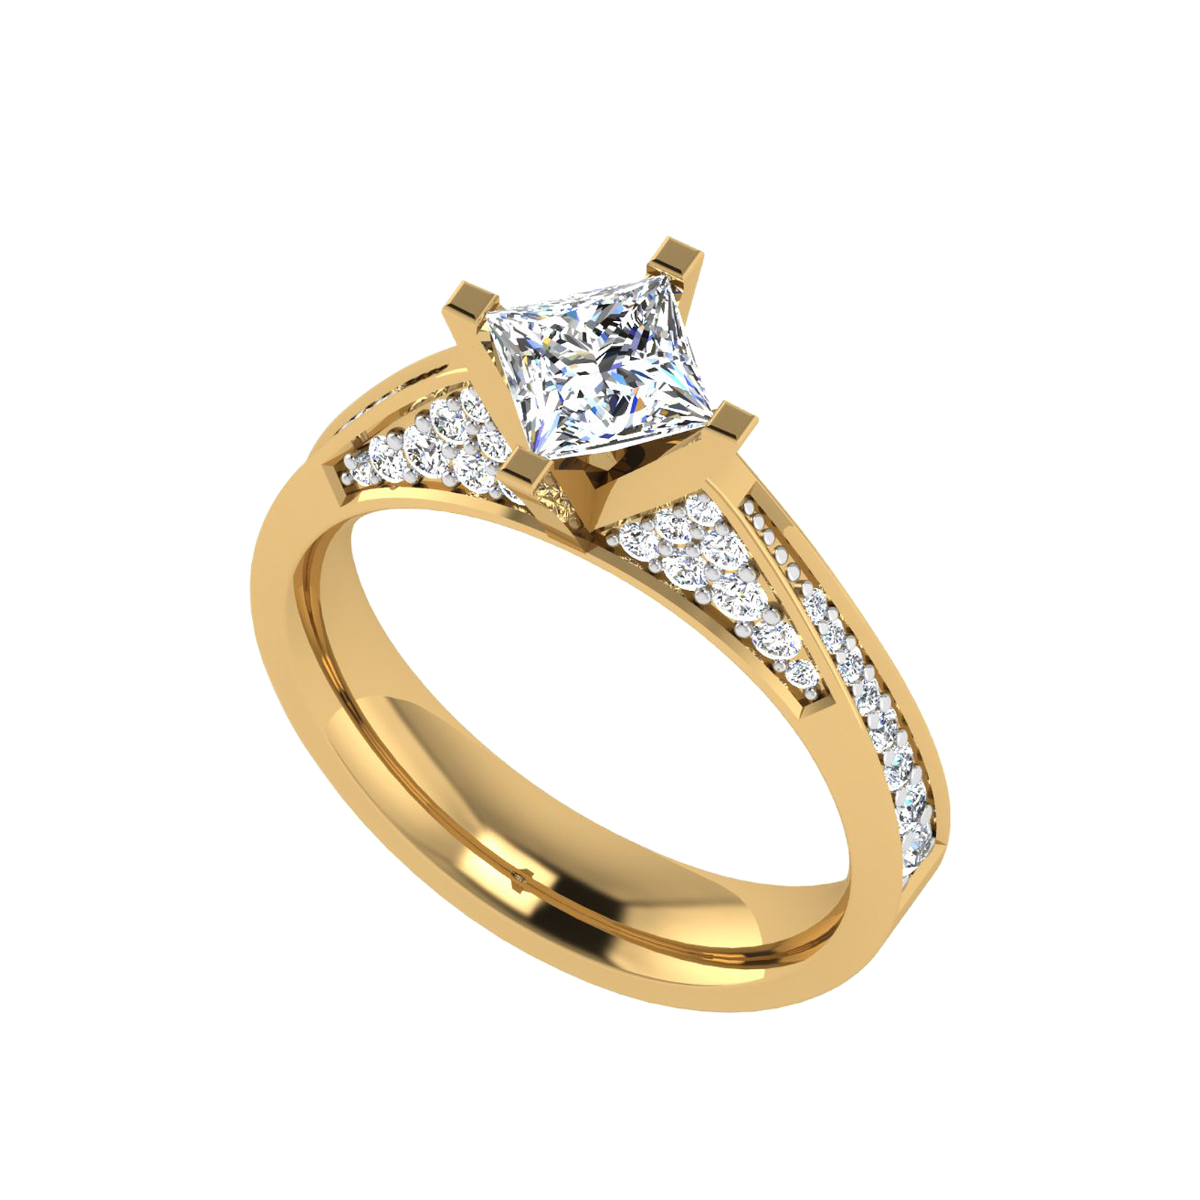 The Prominence Princess Cut Diamond Solitaire Ring